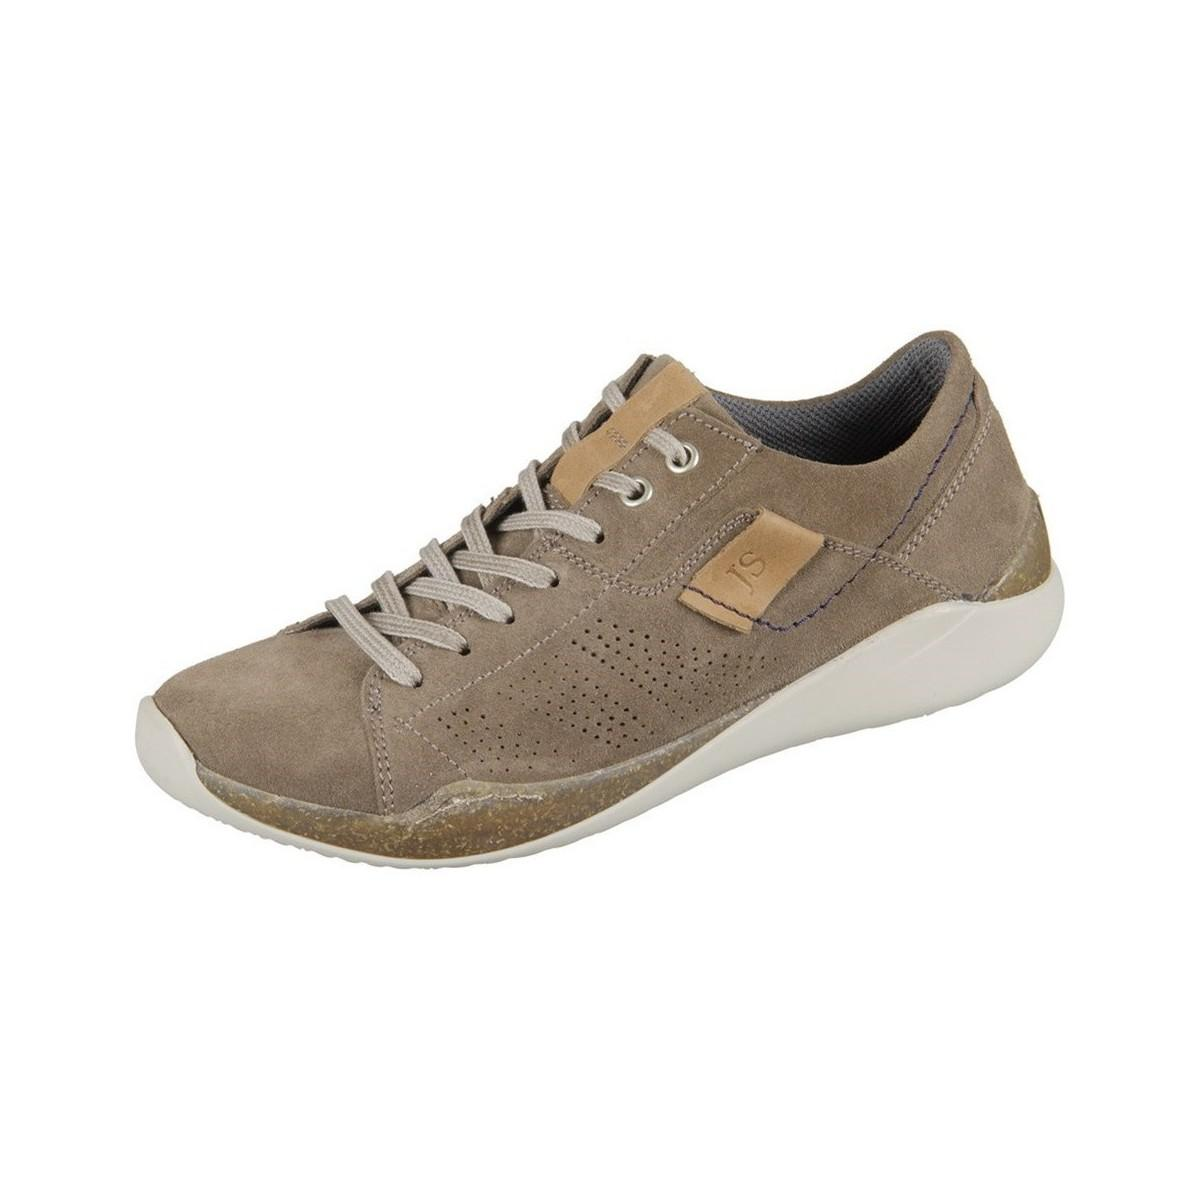 Cheap Sale Countdown Package Josef Seibel Ricky 05 women's Shoes (Trainers) in Free Shipping Latest Sale Recommend 9t3xs2k